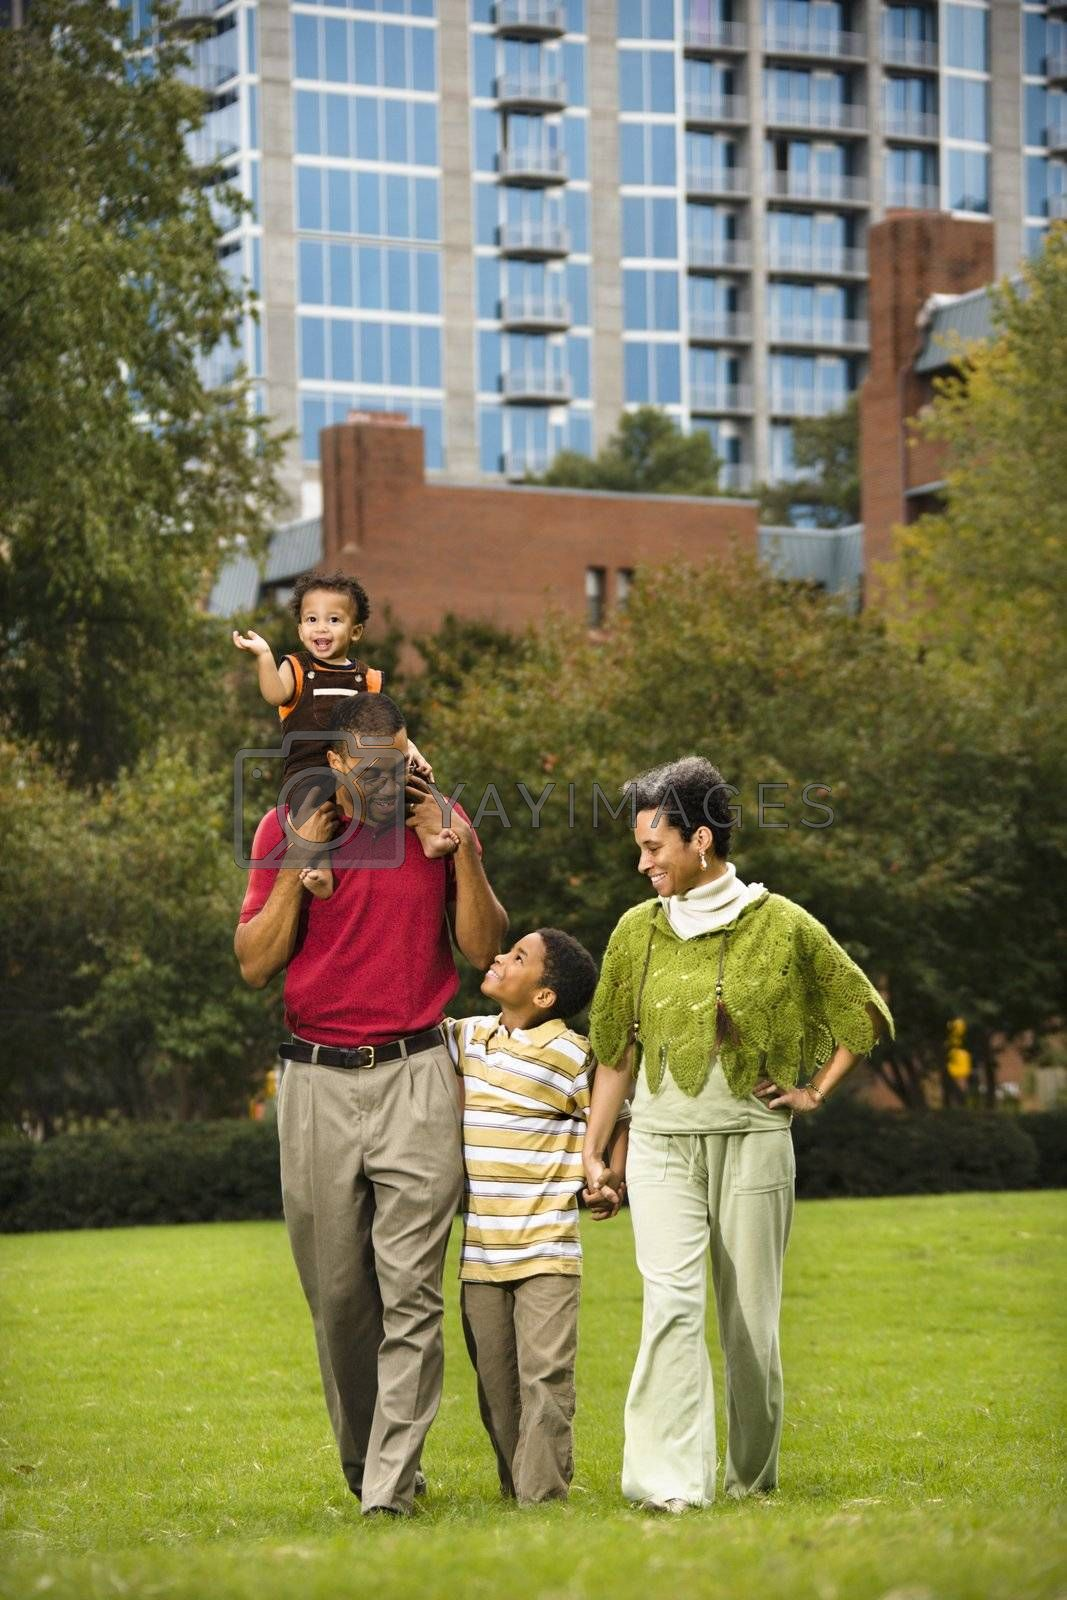 Family of four people walking in park smiling.